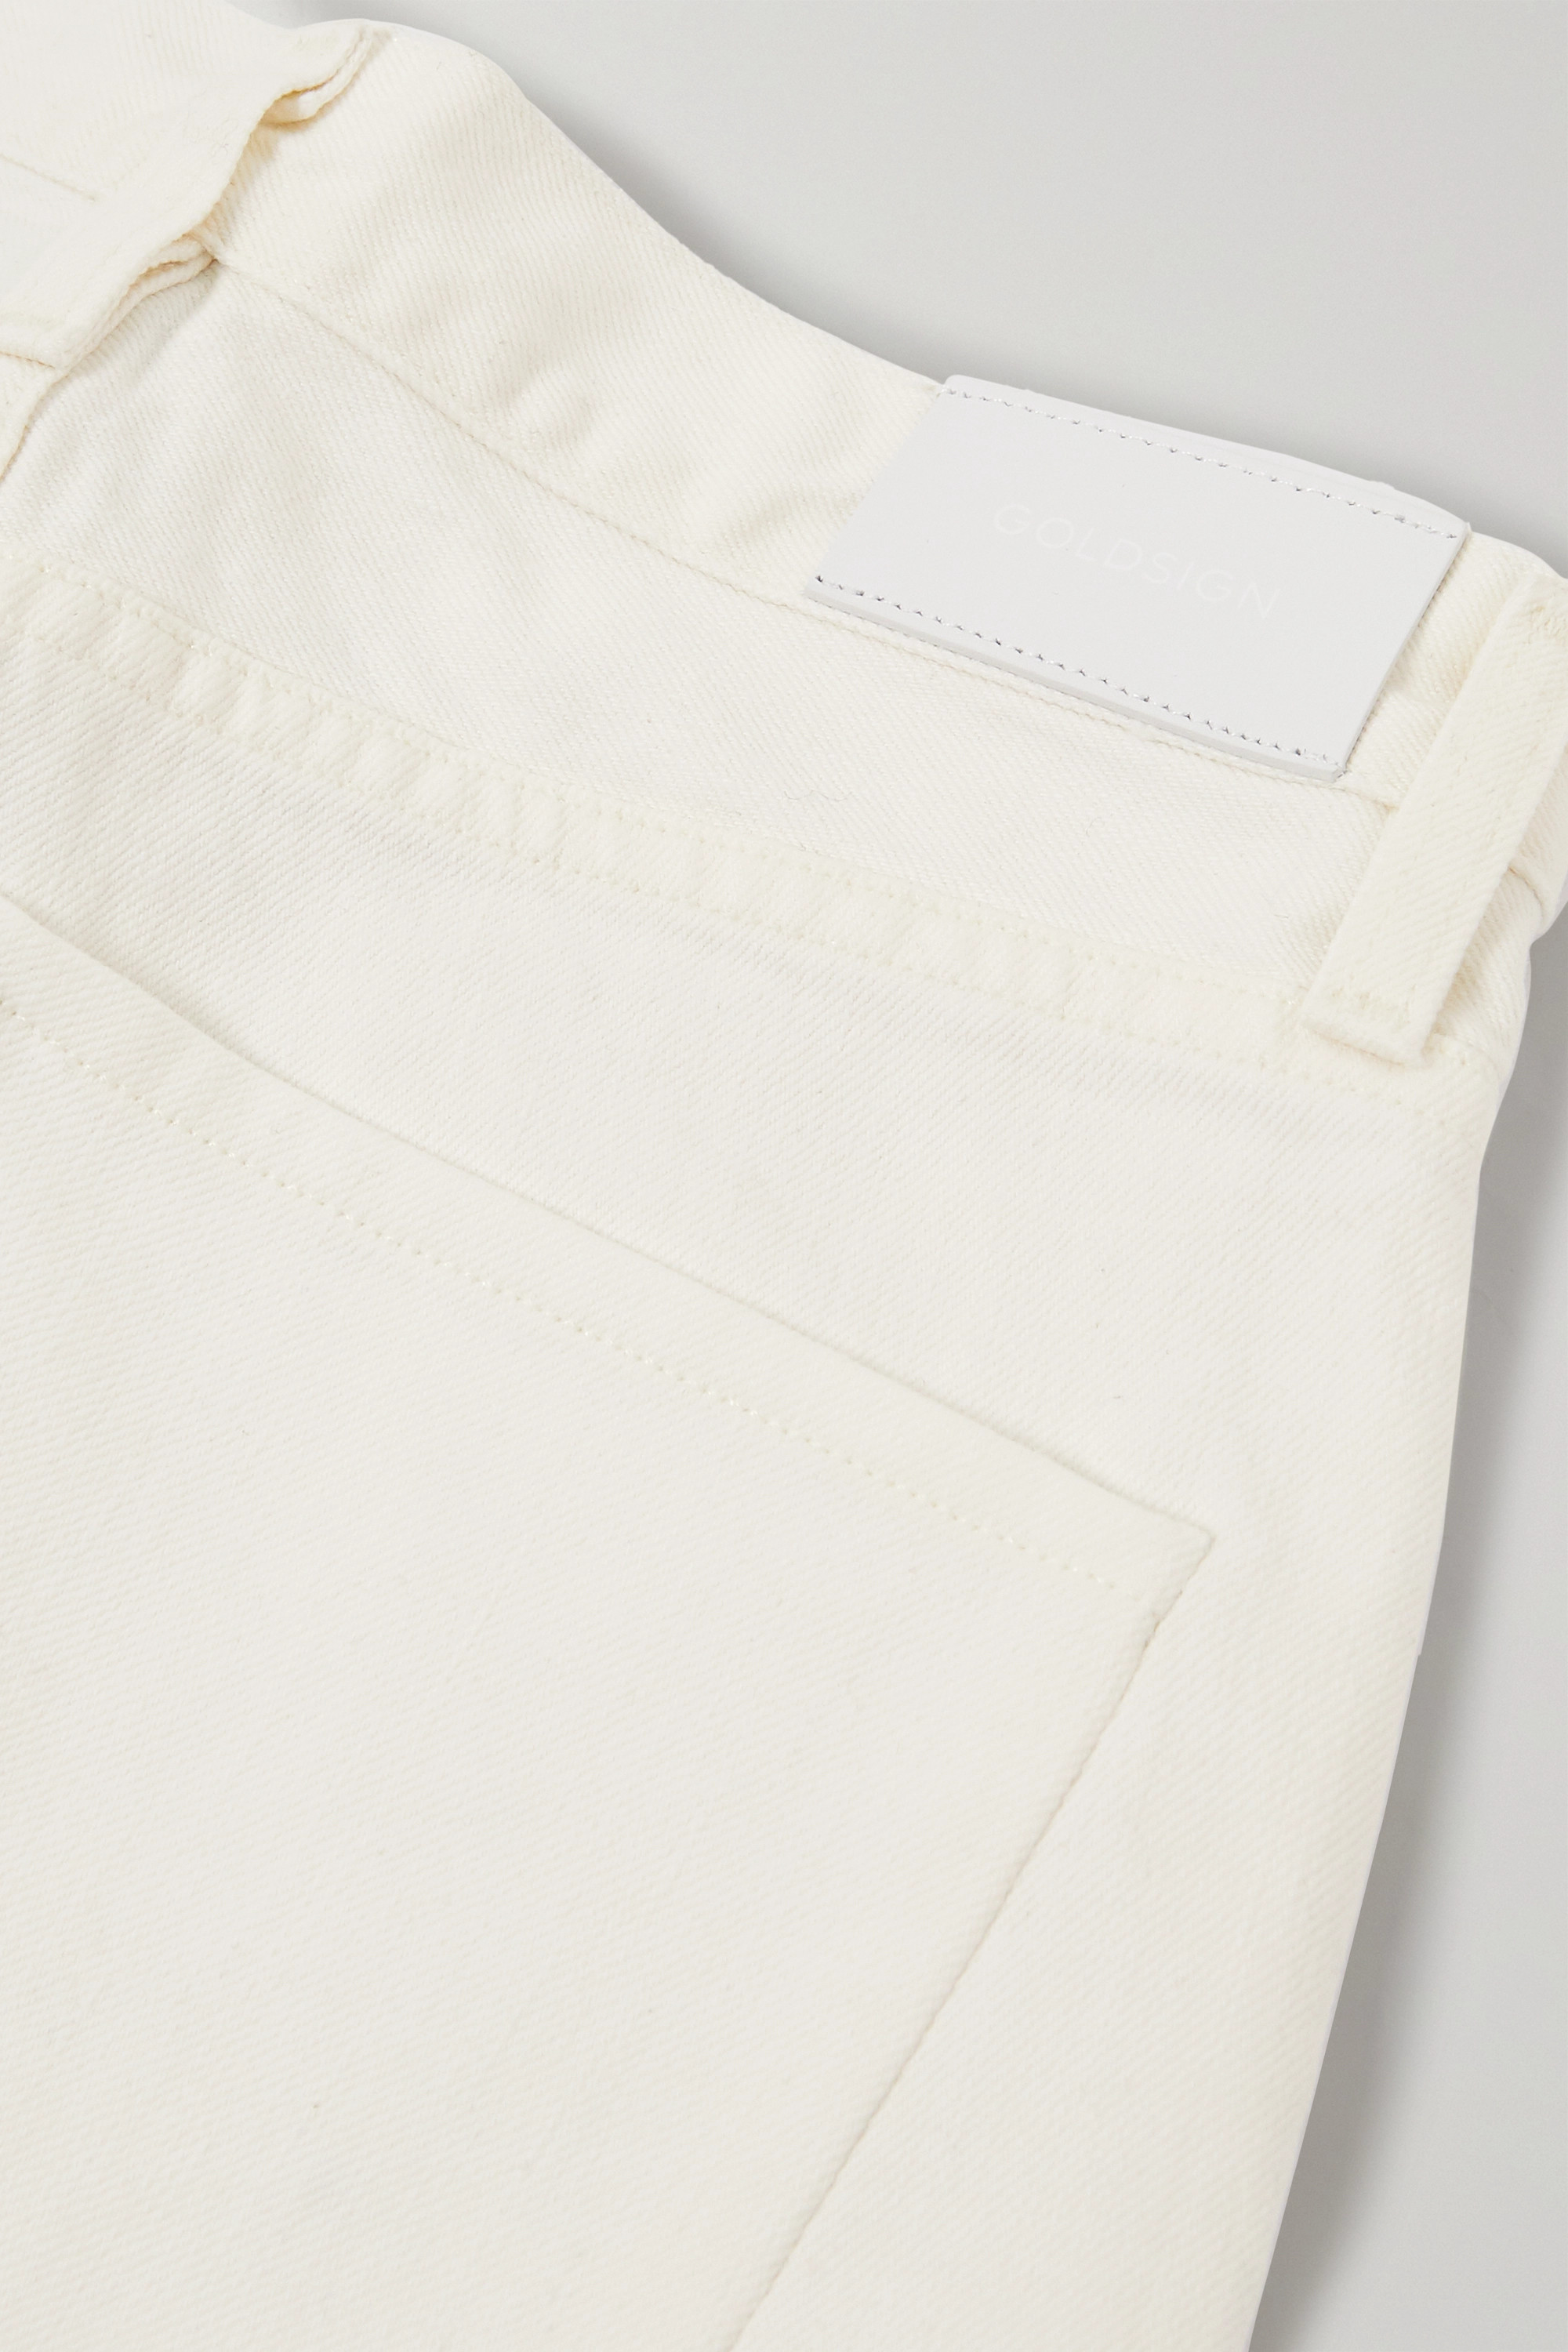 GOLDSIGN + NET SUSTAIN The Curved cropped high-rise tapered jeans